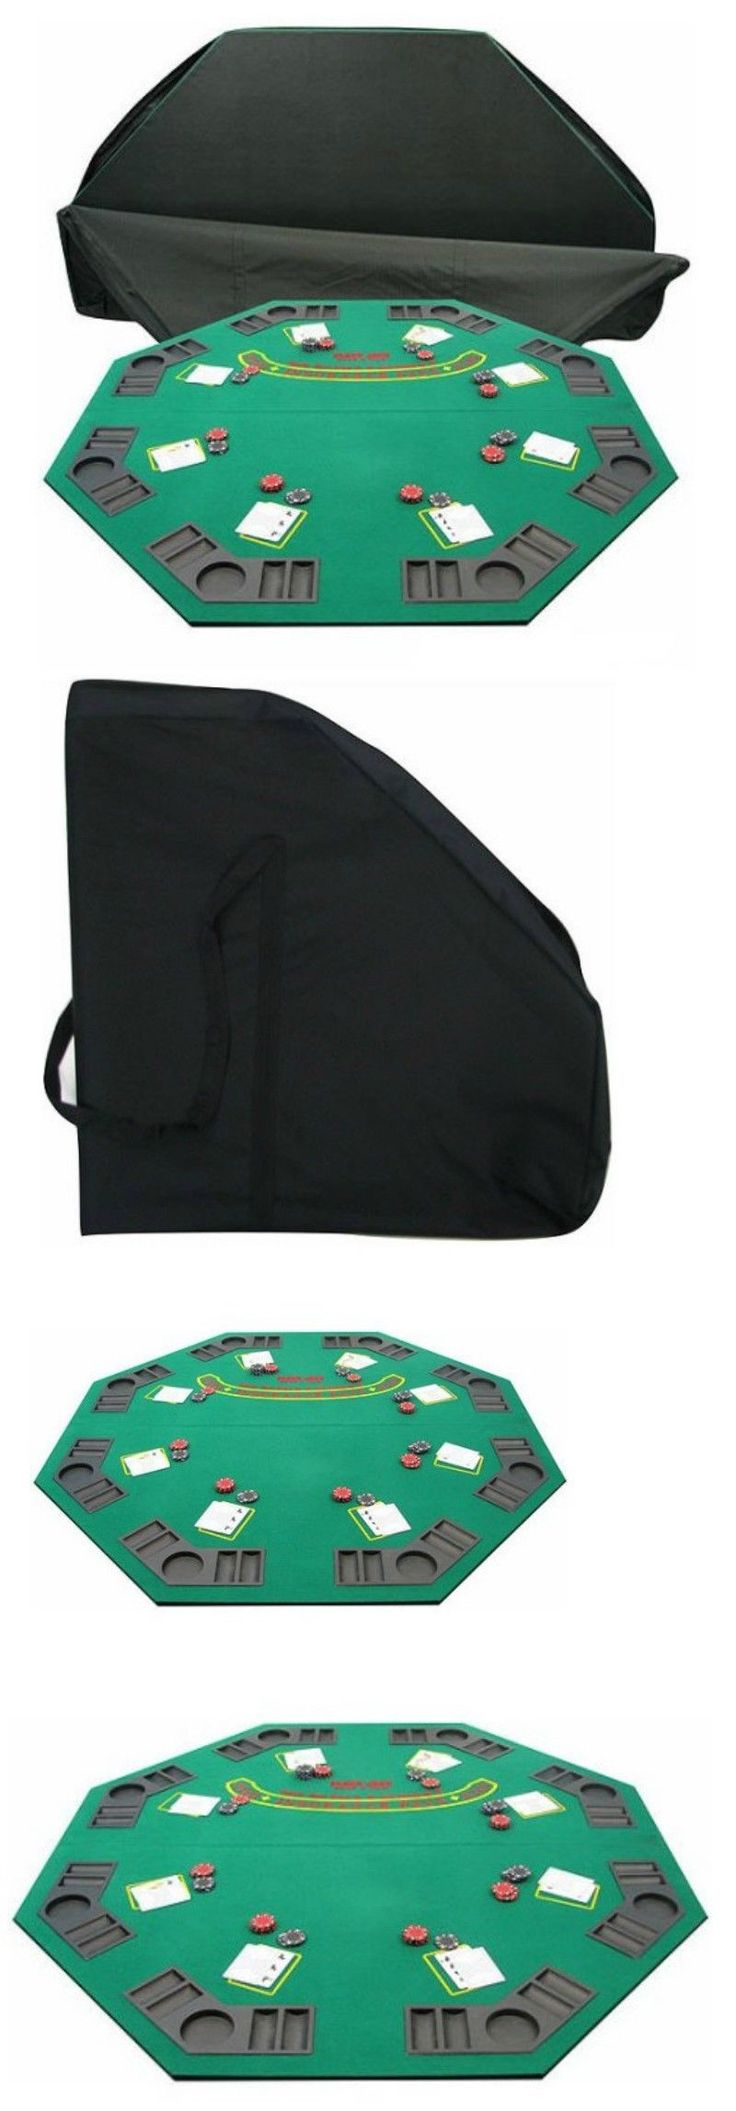 Card Tables and Tabletops 166572: Green Felt Octagon Poker Blackjack Tabletop Table Top Home Cards Texas W Case -> BUY IT NOW ONLY: $49.49 on eBay!